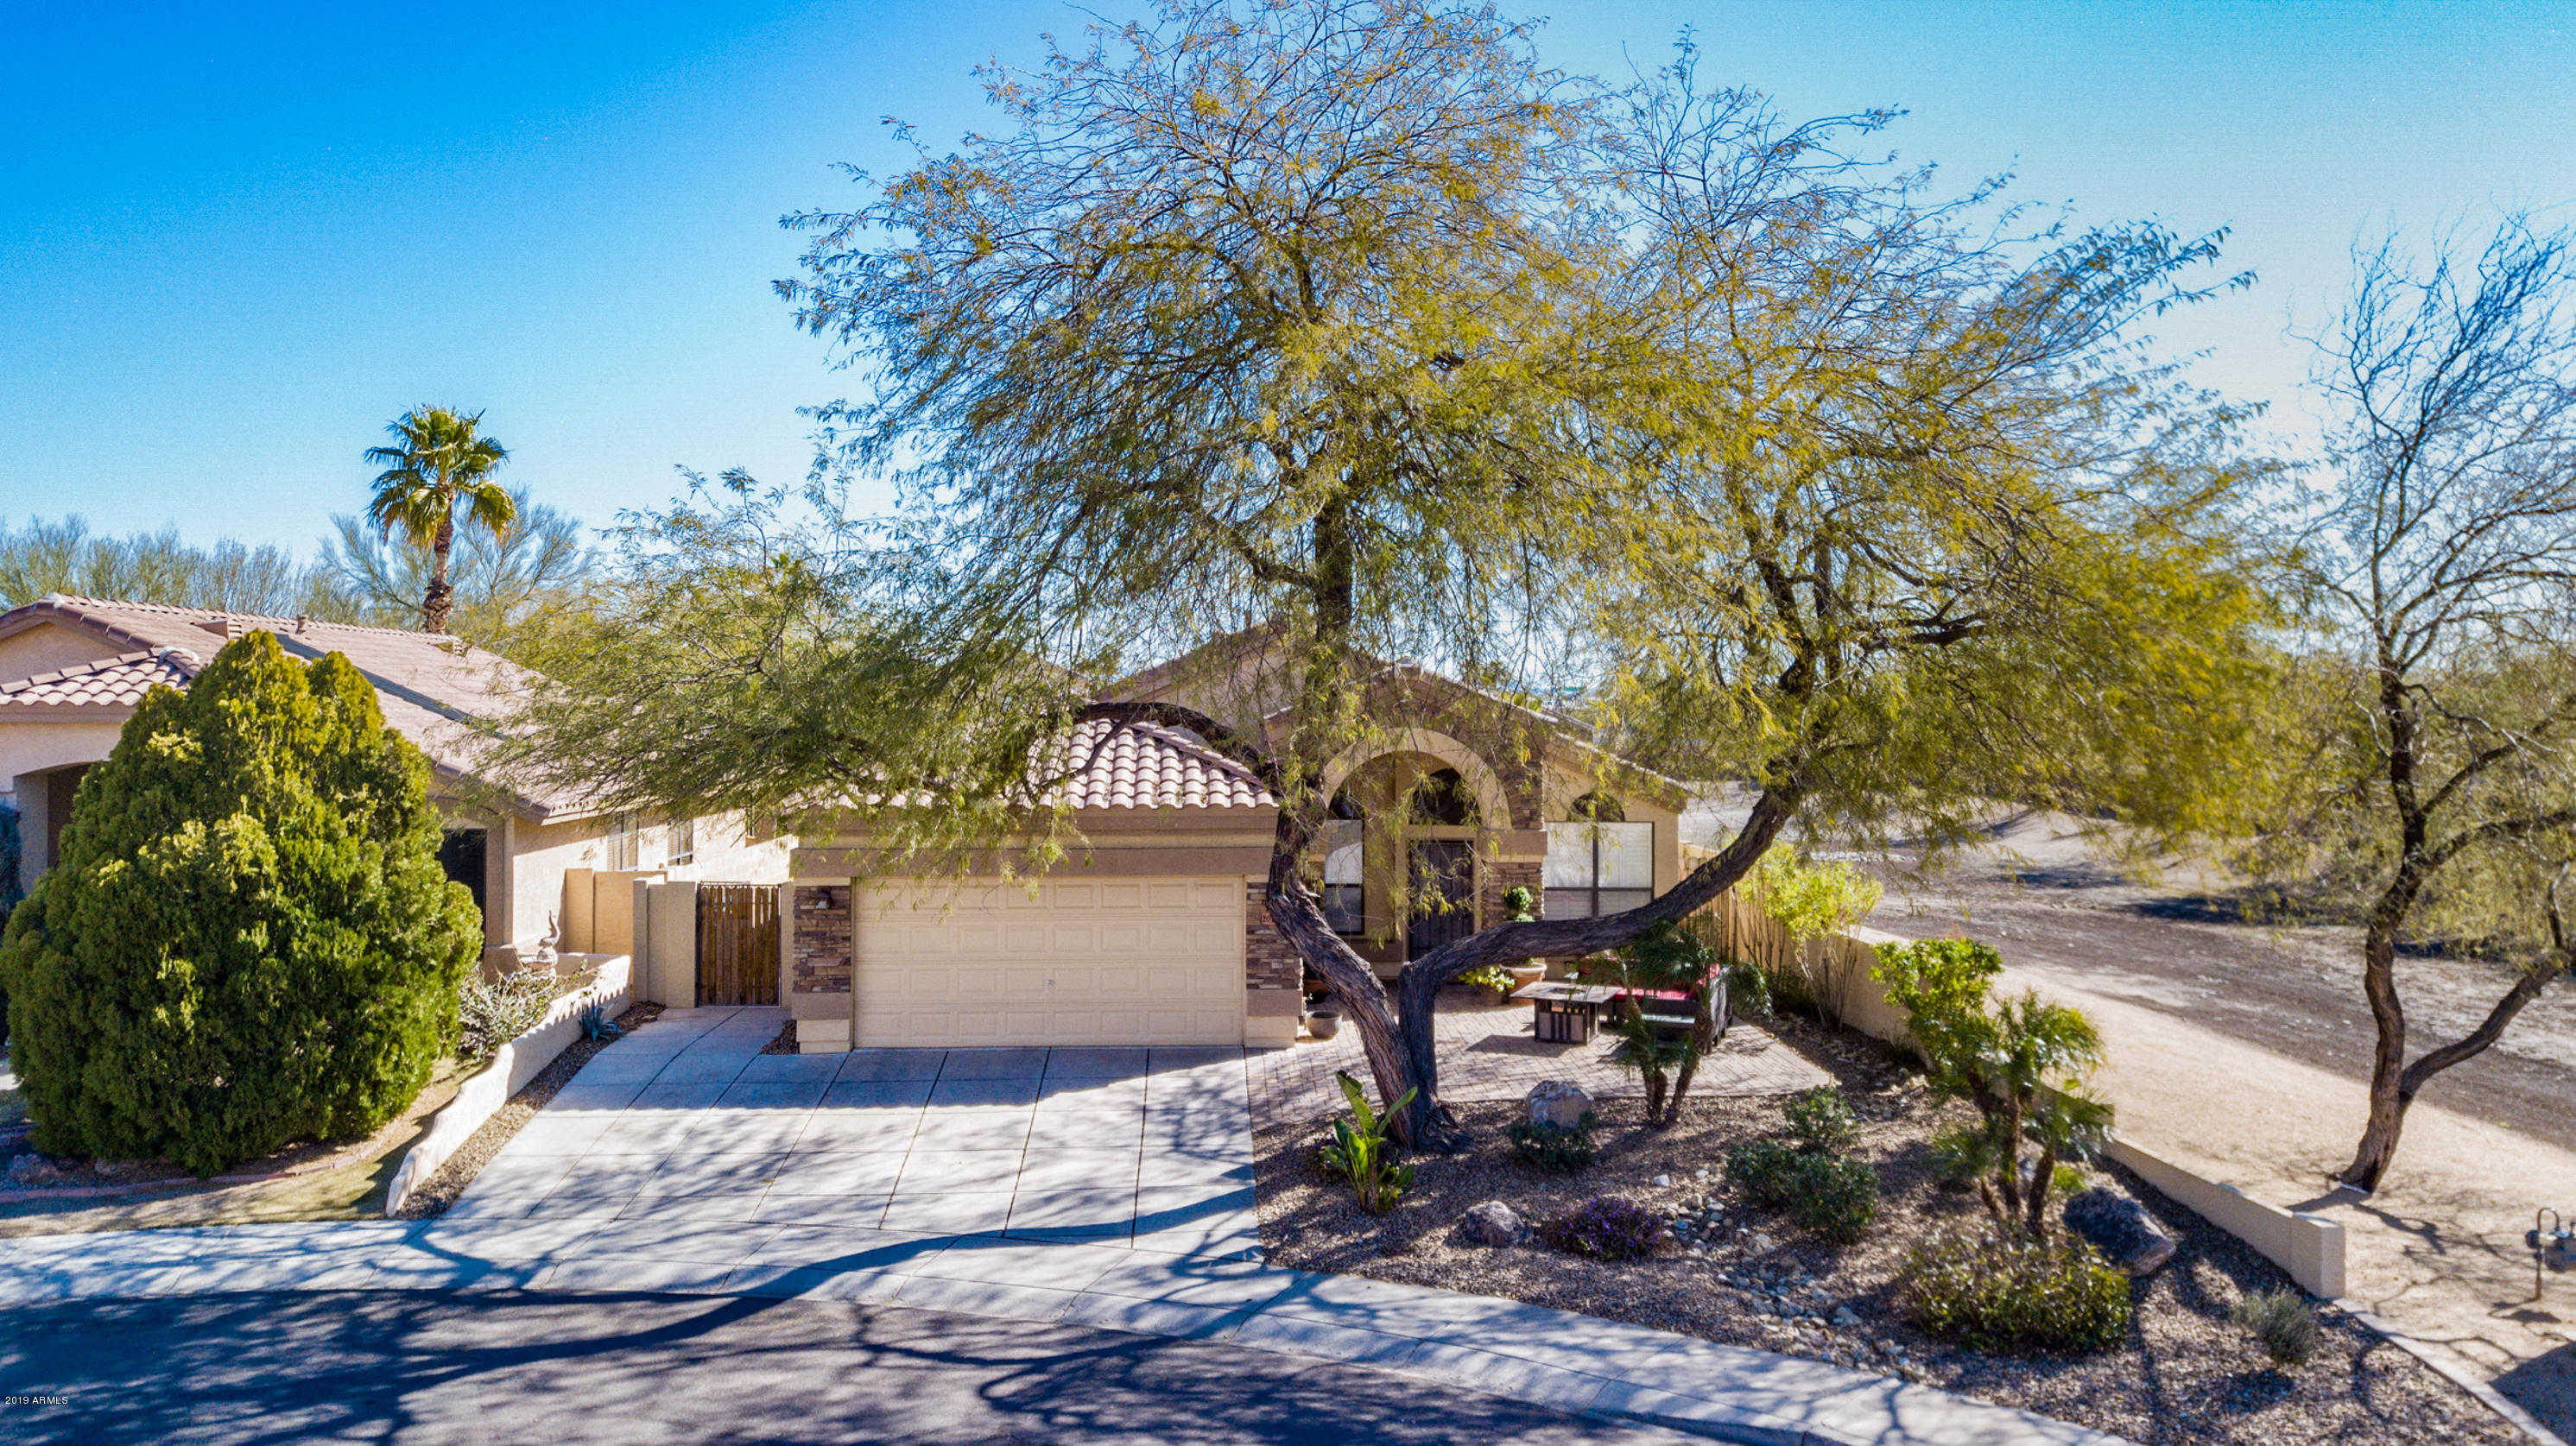 $304,999 - 4Br/2Ba - Home for Sale in Arroyo Springs Parcle B, Glendale